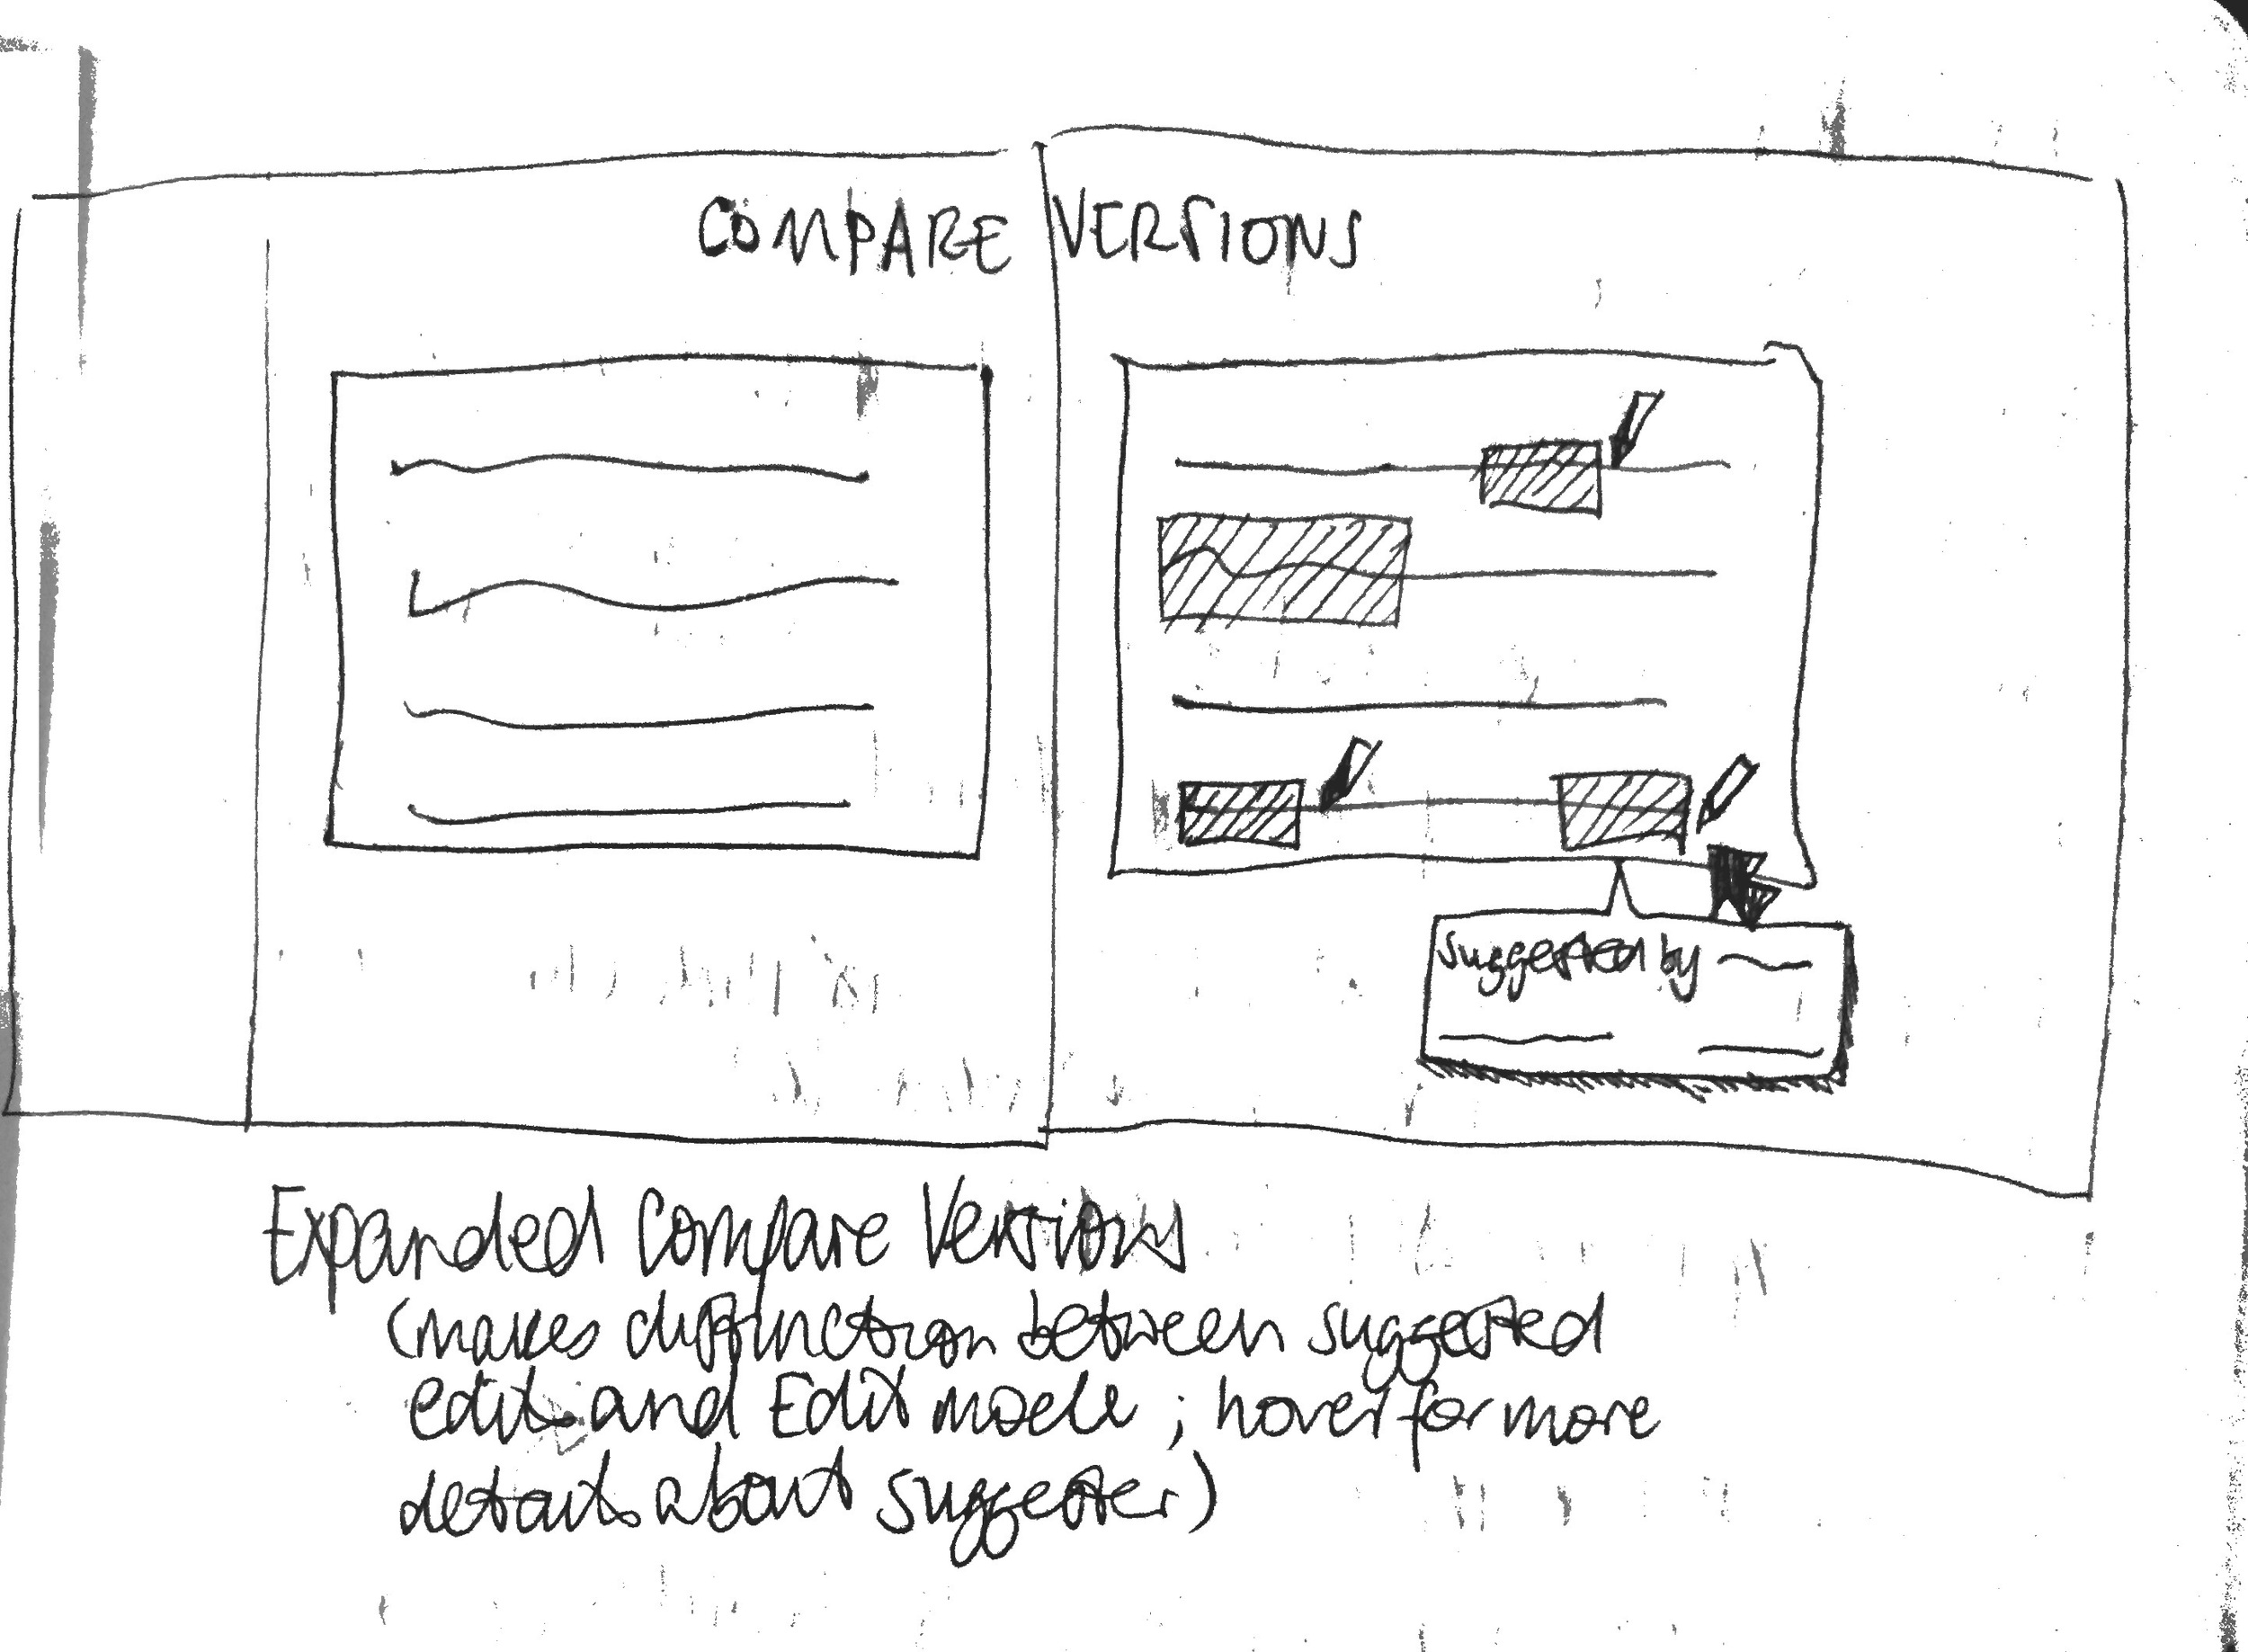 Sketch of the Compare Versions UI with ability to undo individual edits